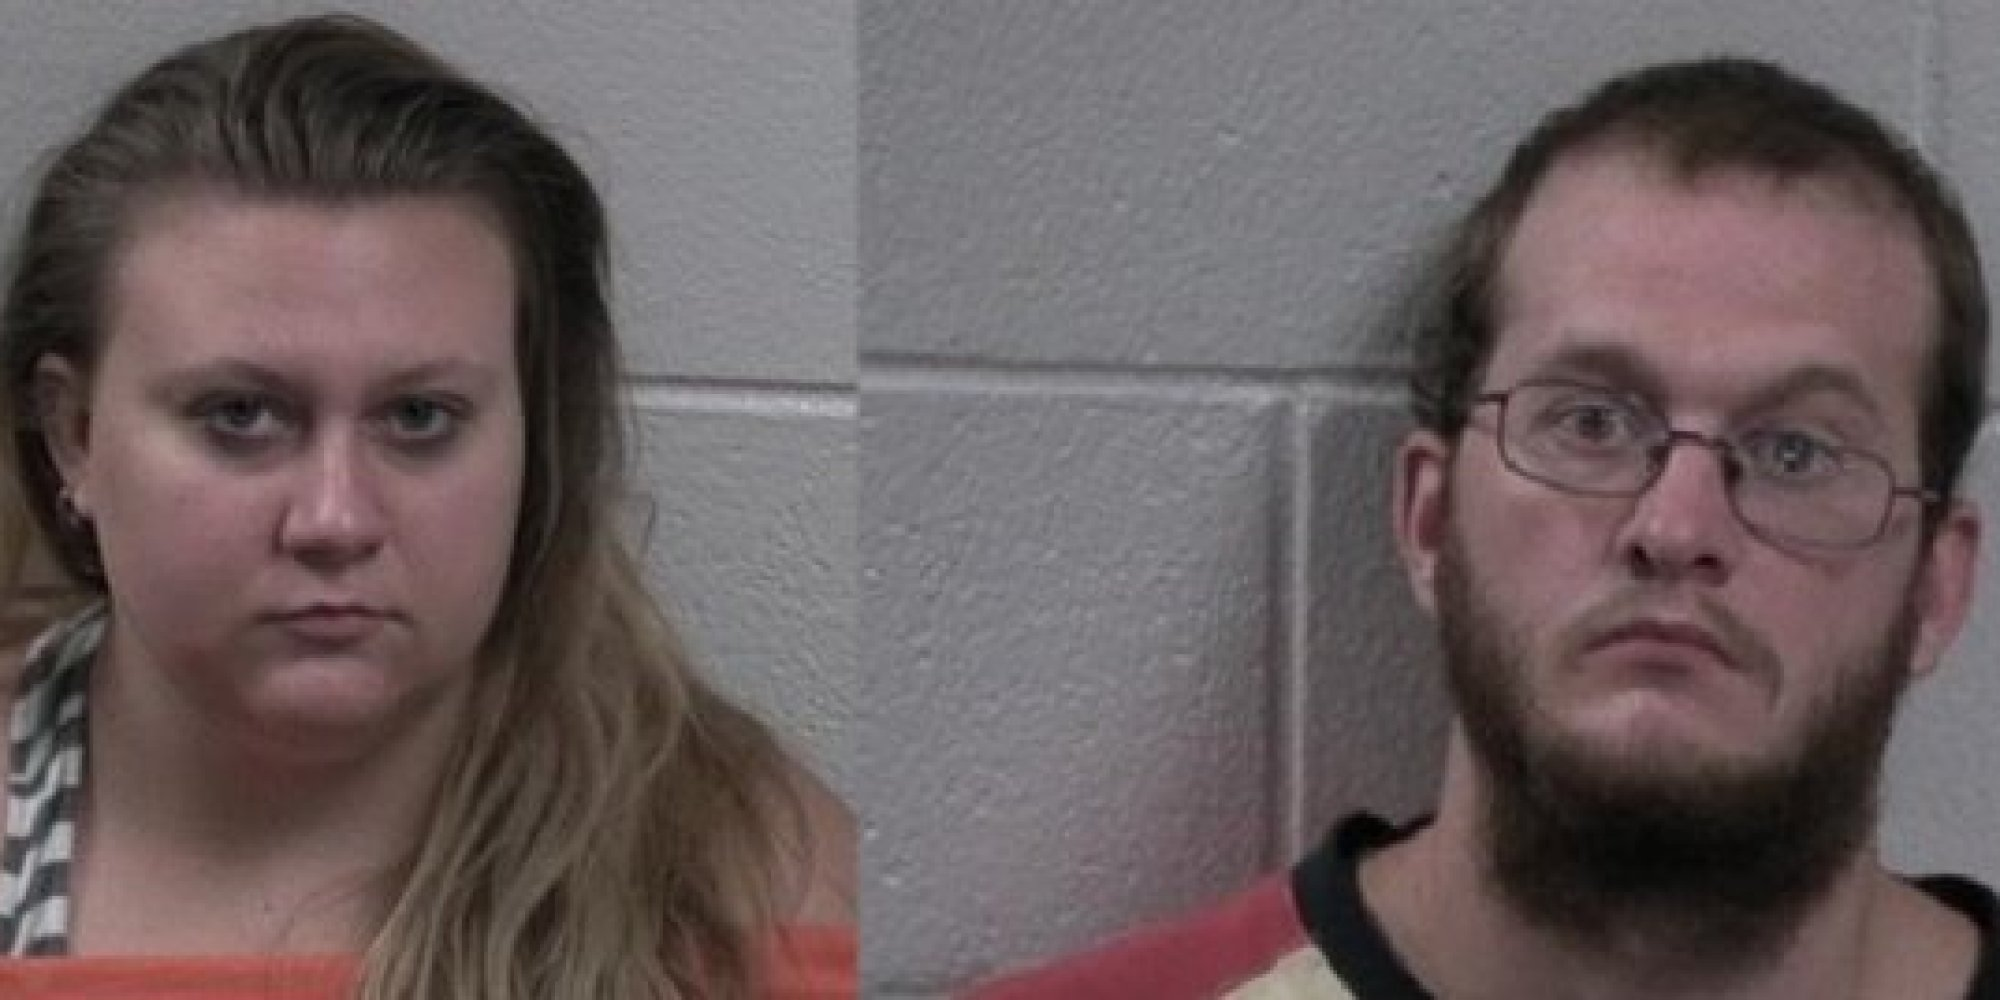 brother and sister suspected of having sex in tractor trailer